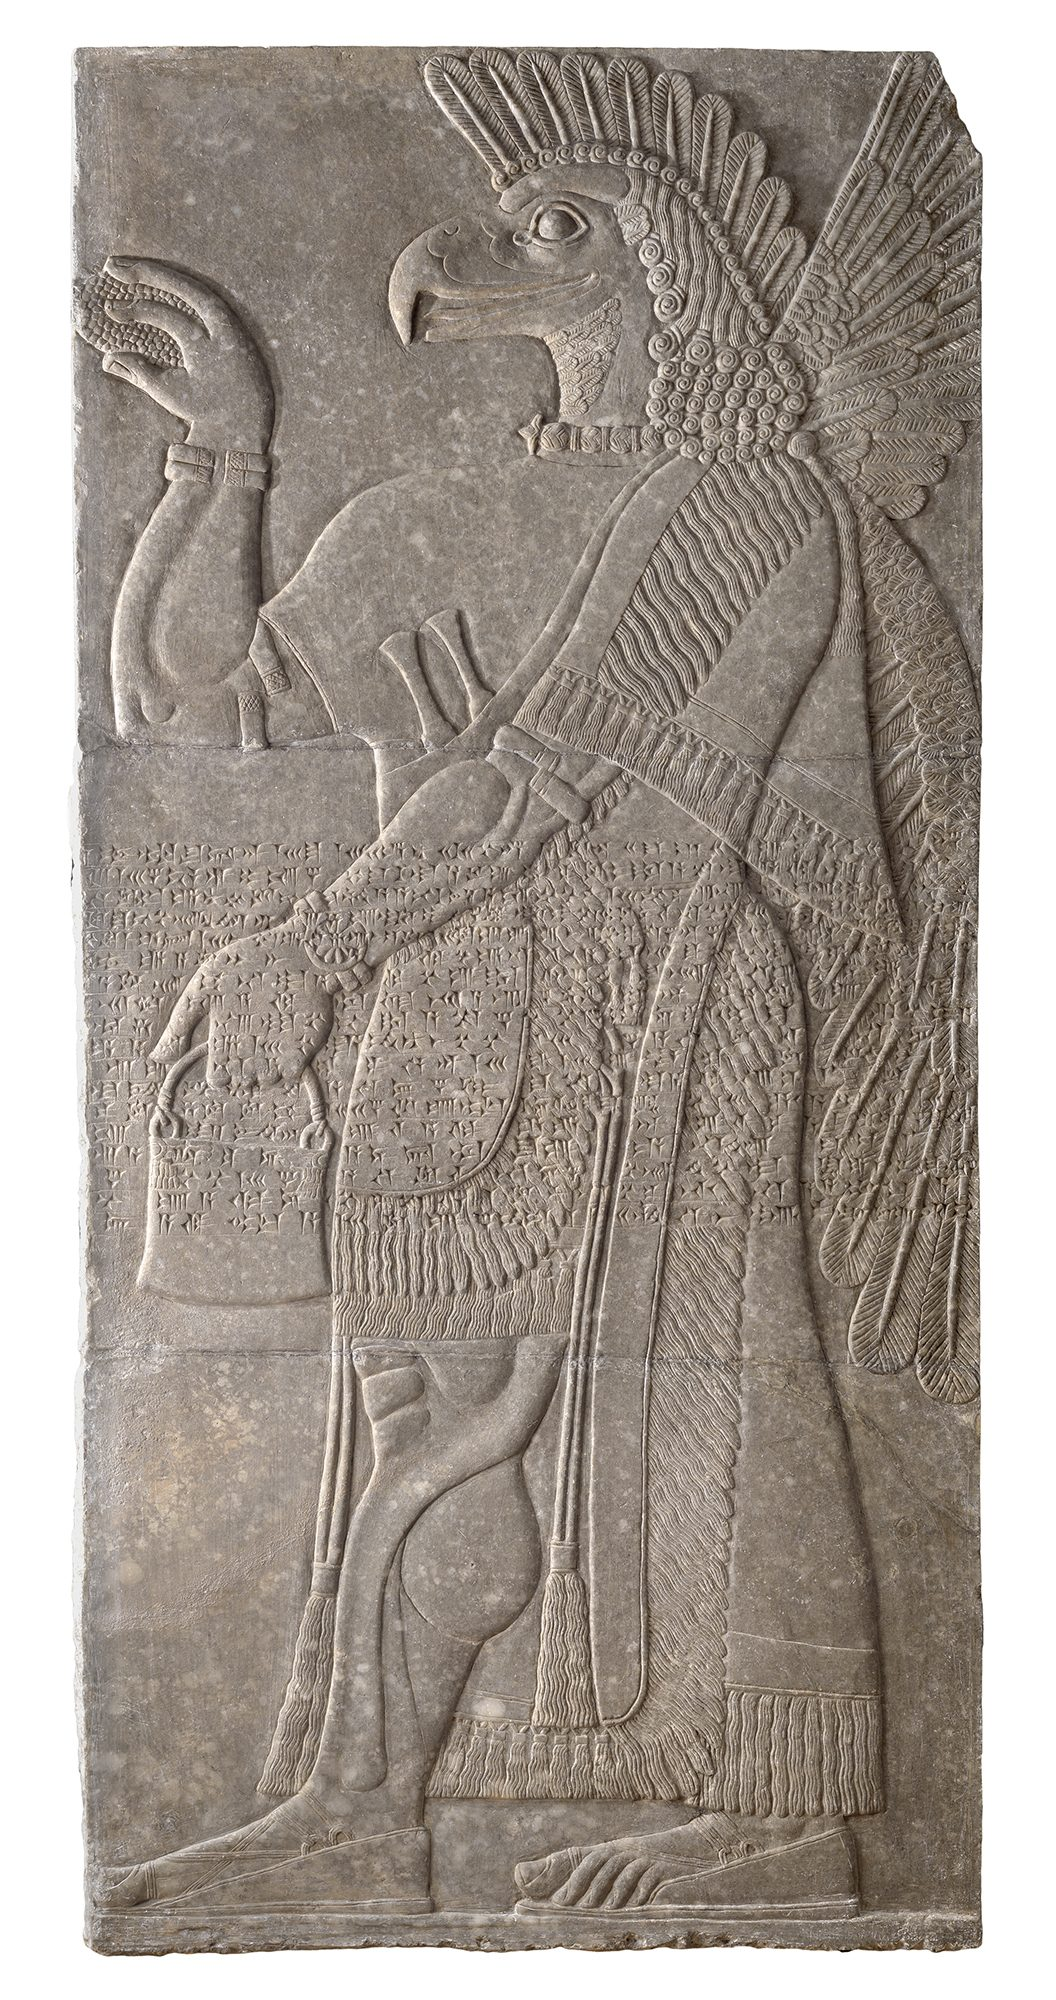 Winged Guardian Spirit from the Northwest Palace of Ashurnasirpal II, ca. 880 BC. Gypsum. Gift of Sir Austen Henry Layard through Dwight W. Marsh, Class of 1842, 1851.2